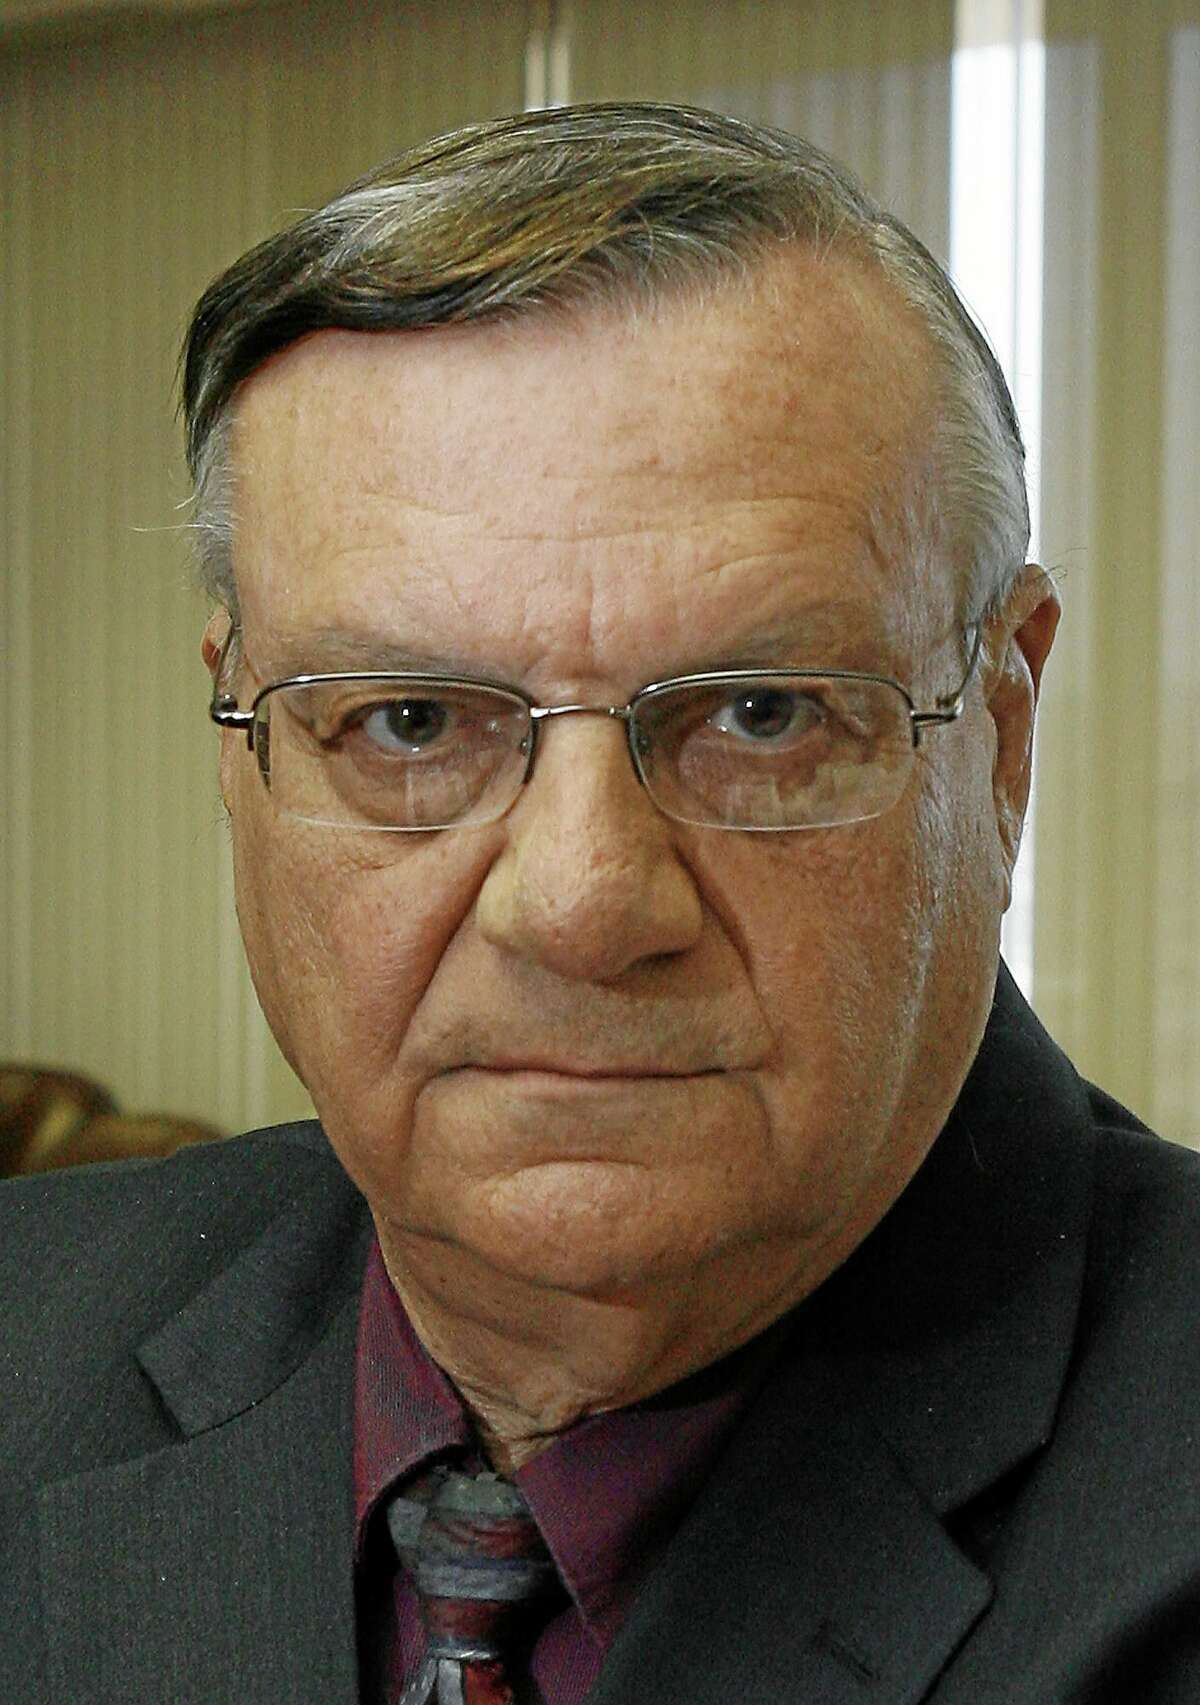 This April 17, 2008, photo shows Maricopa County Sheriff Joe Arpaio in his office in Phoenix.